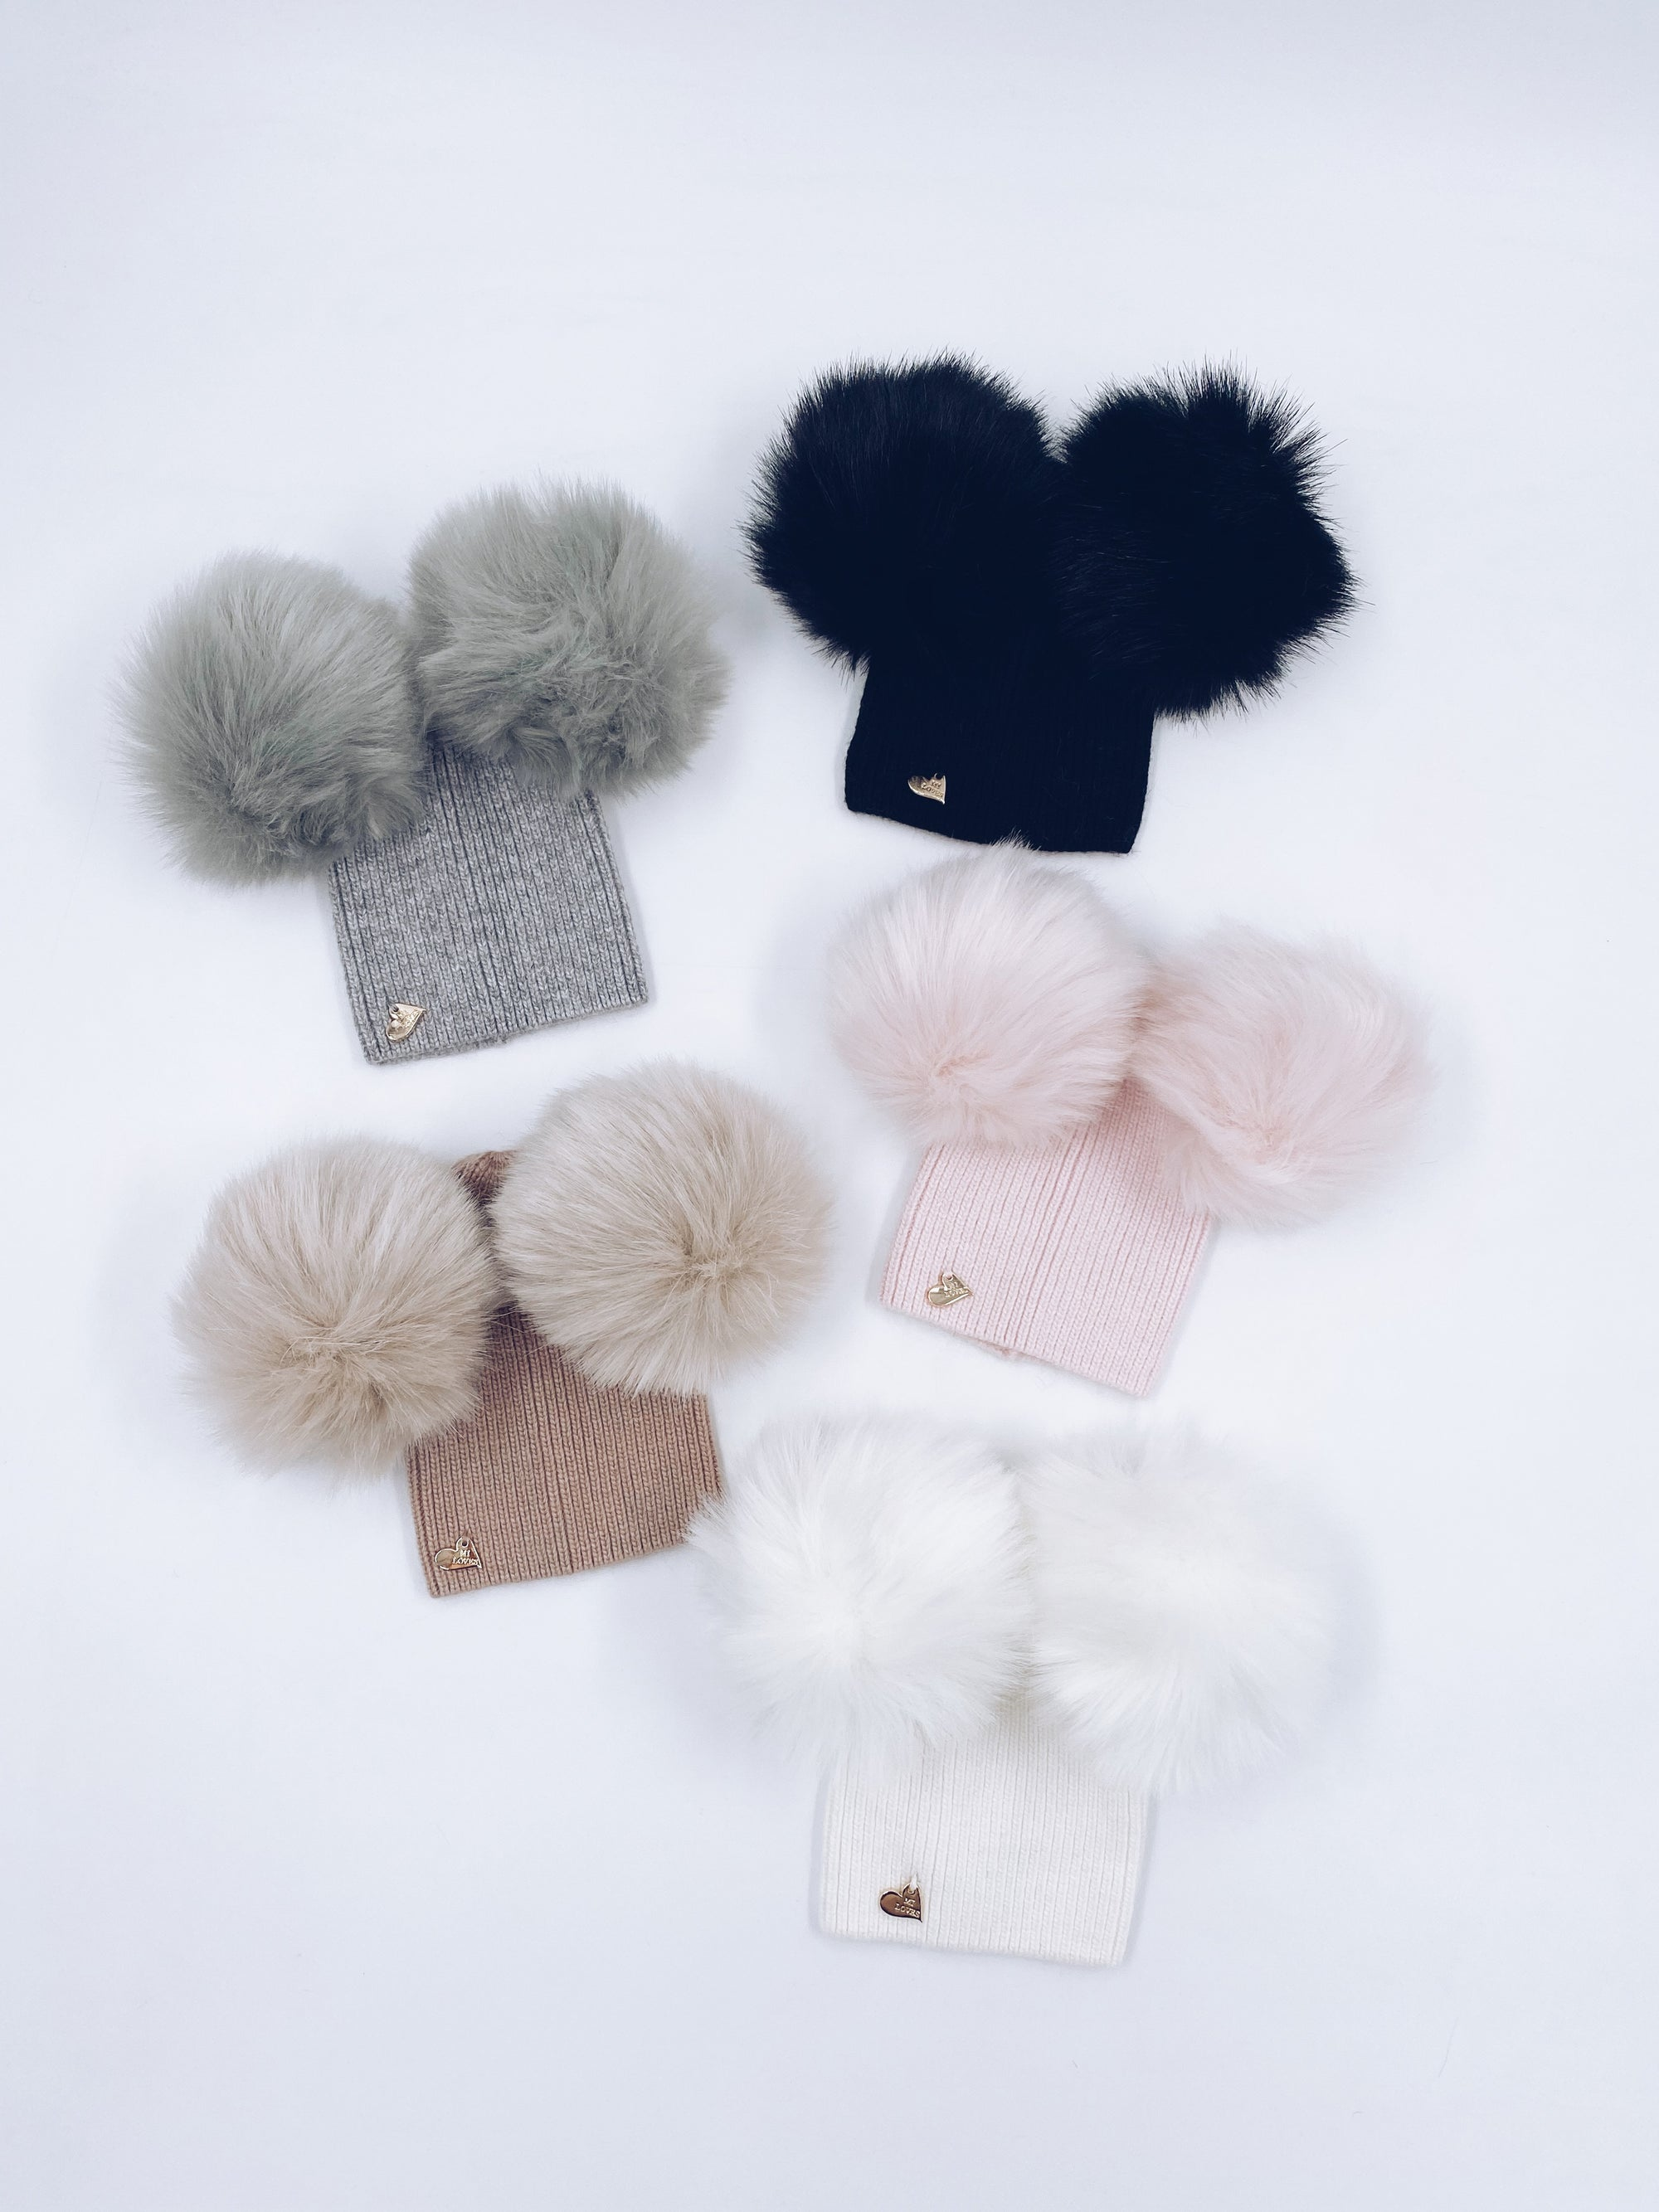 MI LOVES SIGNATURE Angora Kids double pompom hat with Synthetic fur pom-poms.